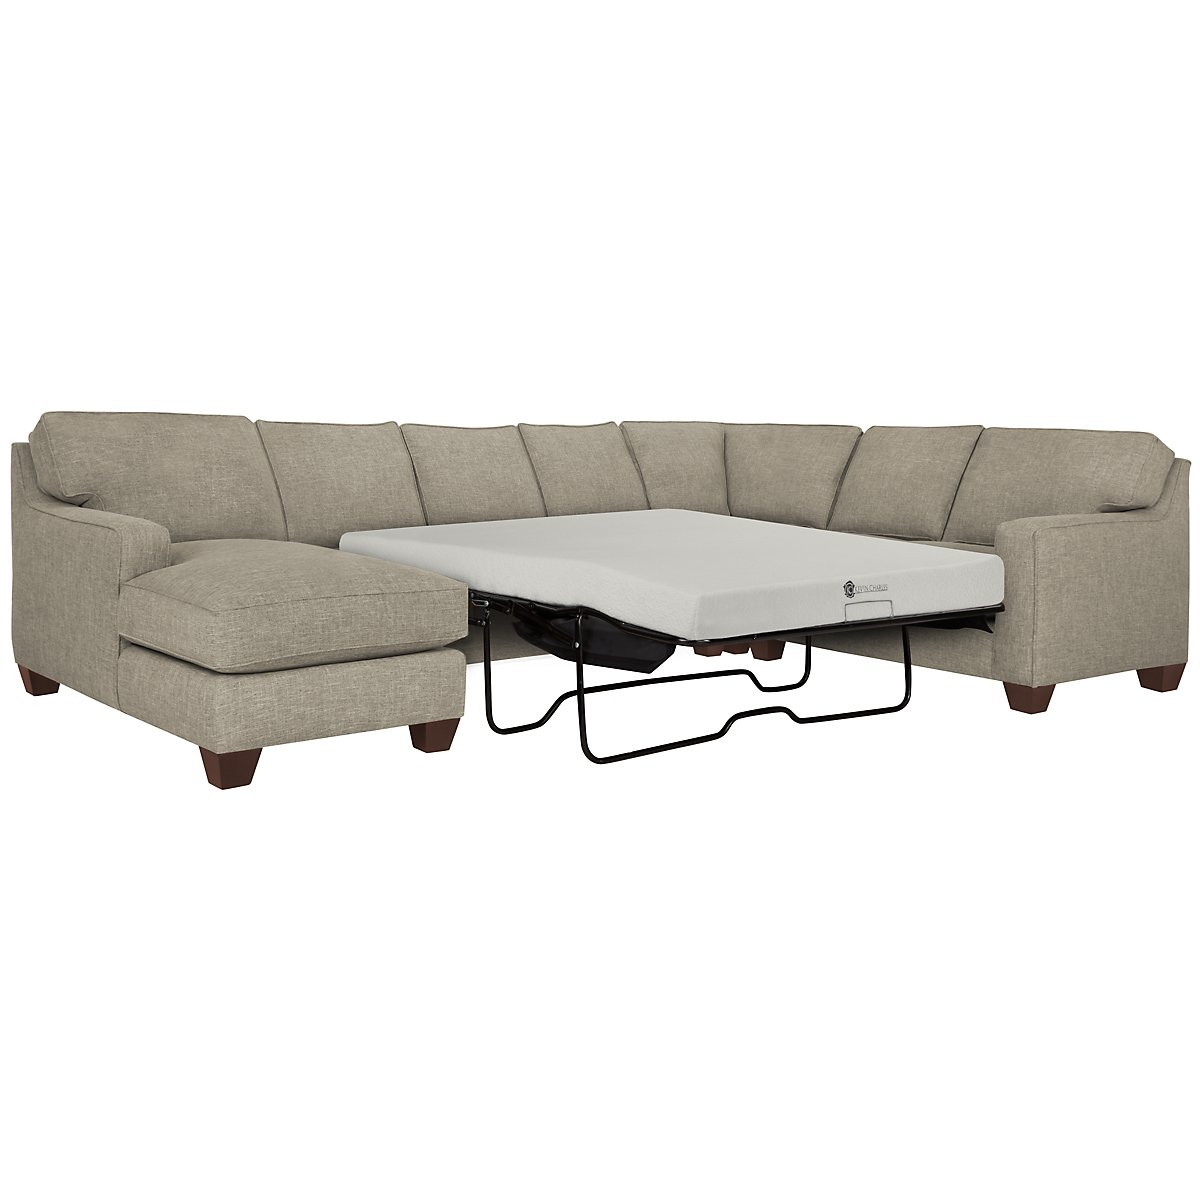 York Pewter Fabric Left Chaise Memory Foam Sleeper Sectional